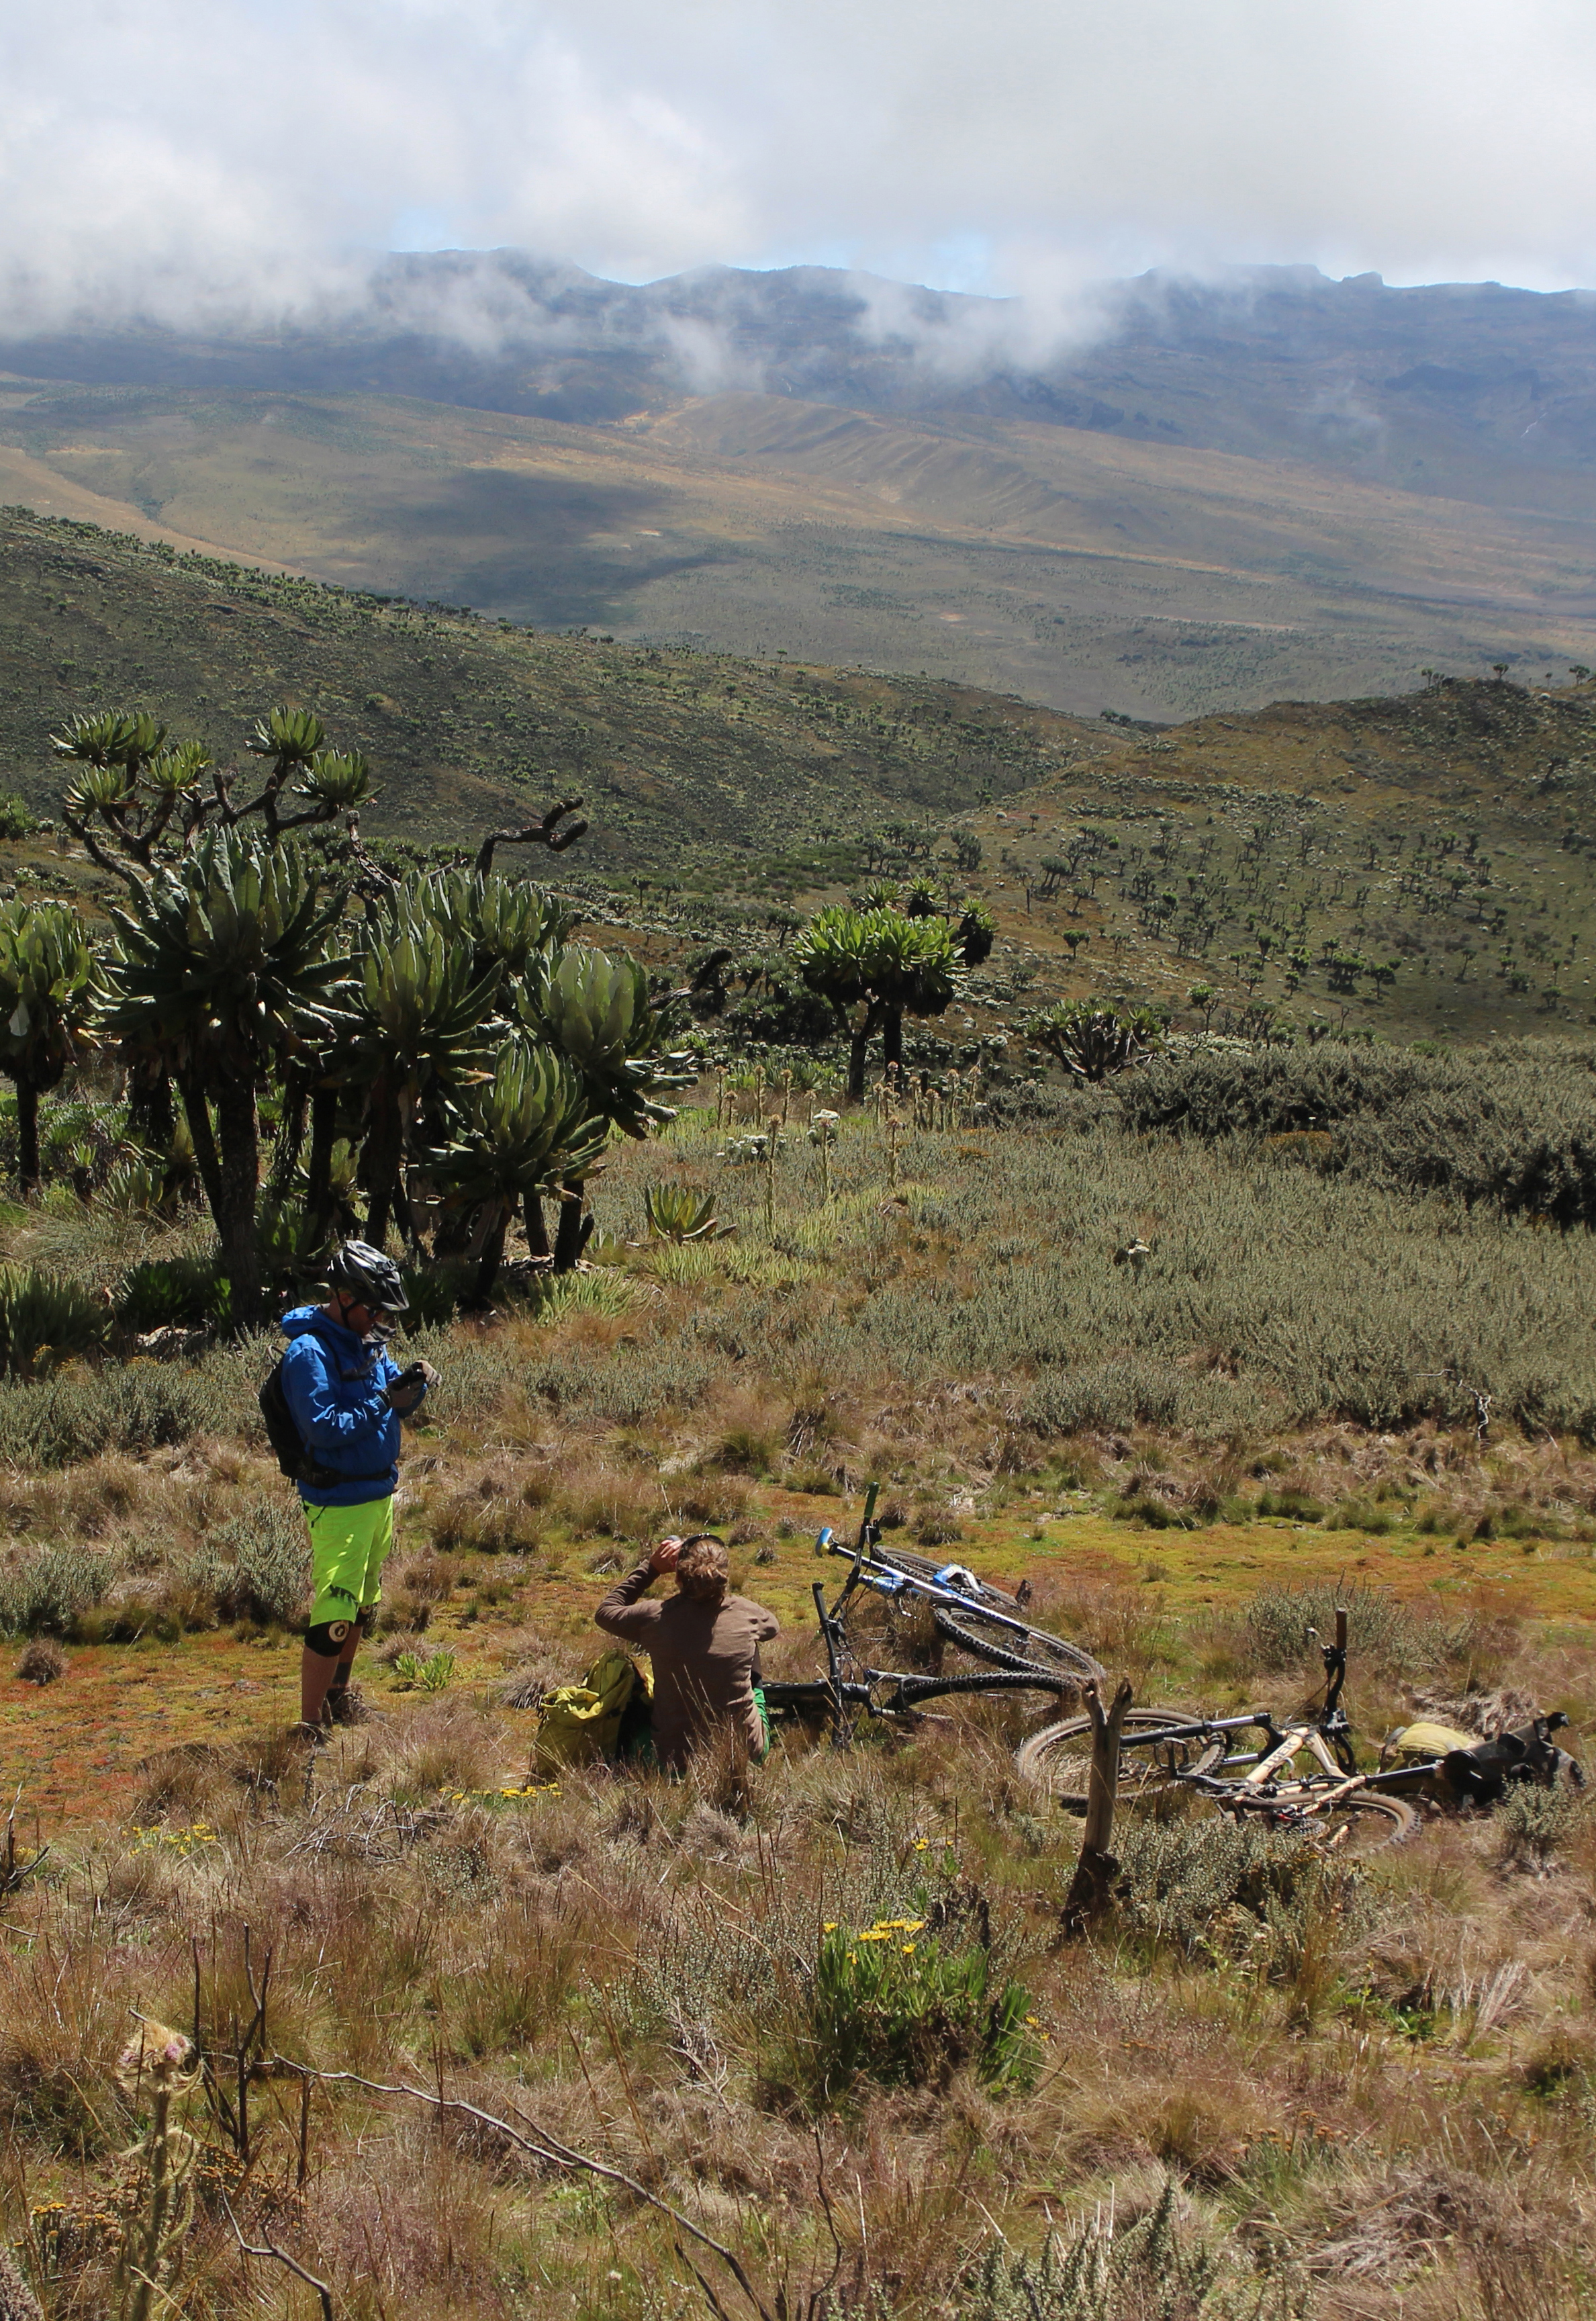 Mt. Elgon MTB expedition. - Clark Expeditions has pioneered MTB expeditions on Mt. Elgon. Having tested many different route options we now have the knowledge to take anyone with a decent level of fitness and a positive attitude to the top and back with a bike! There are different routes and many different levels of technicality, from fast downhill descents to long gentle journeys across the mountain.Whichever way we tackle the mountain you are sure to fall in love with its beauty and charm and go away with lasting memories.Mt. Elgon is 4321m and an extinct volcano. It is the largest freestanding volcanic base in the world. It straddles Uganda and Kenya with the highest point - Wagagai being in Uganda.There are 4 main routes up and down the mountain. Sasa, Sipi, Piswa and Suam trails. Sasa and Sipi are the most popular for hikers. The Sasa trail is the most direct route up the mountain so that also works for us on bikes, but the Sipi trail is very up and down and no good to ride. So we have utilised the less often hiked Piswa trail across the mountain.The two main options on bikes are up and down the Sasa trail - 2 or 3 days - with more advanced riding and long, fast, more technical descents. Then up the Sasa and down the Piswa trail over 4 or 5 days with incredible riding and accessible to intermediate riders. The 4 day trip is physically tough with lots of hike-a-bike as well as riding, its certainly worth the effort though and is a true adventure!